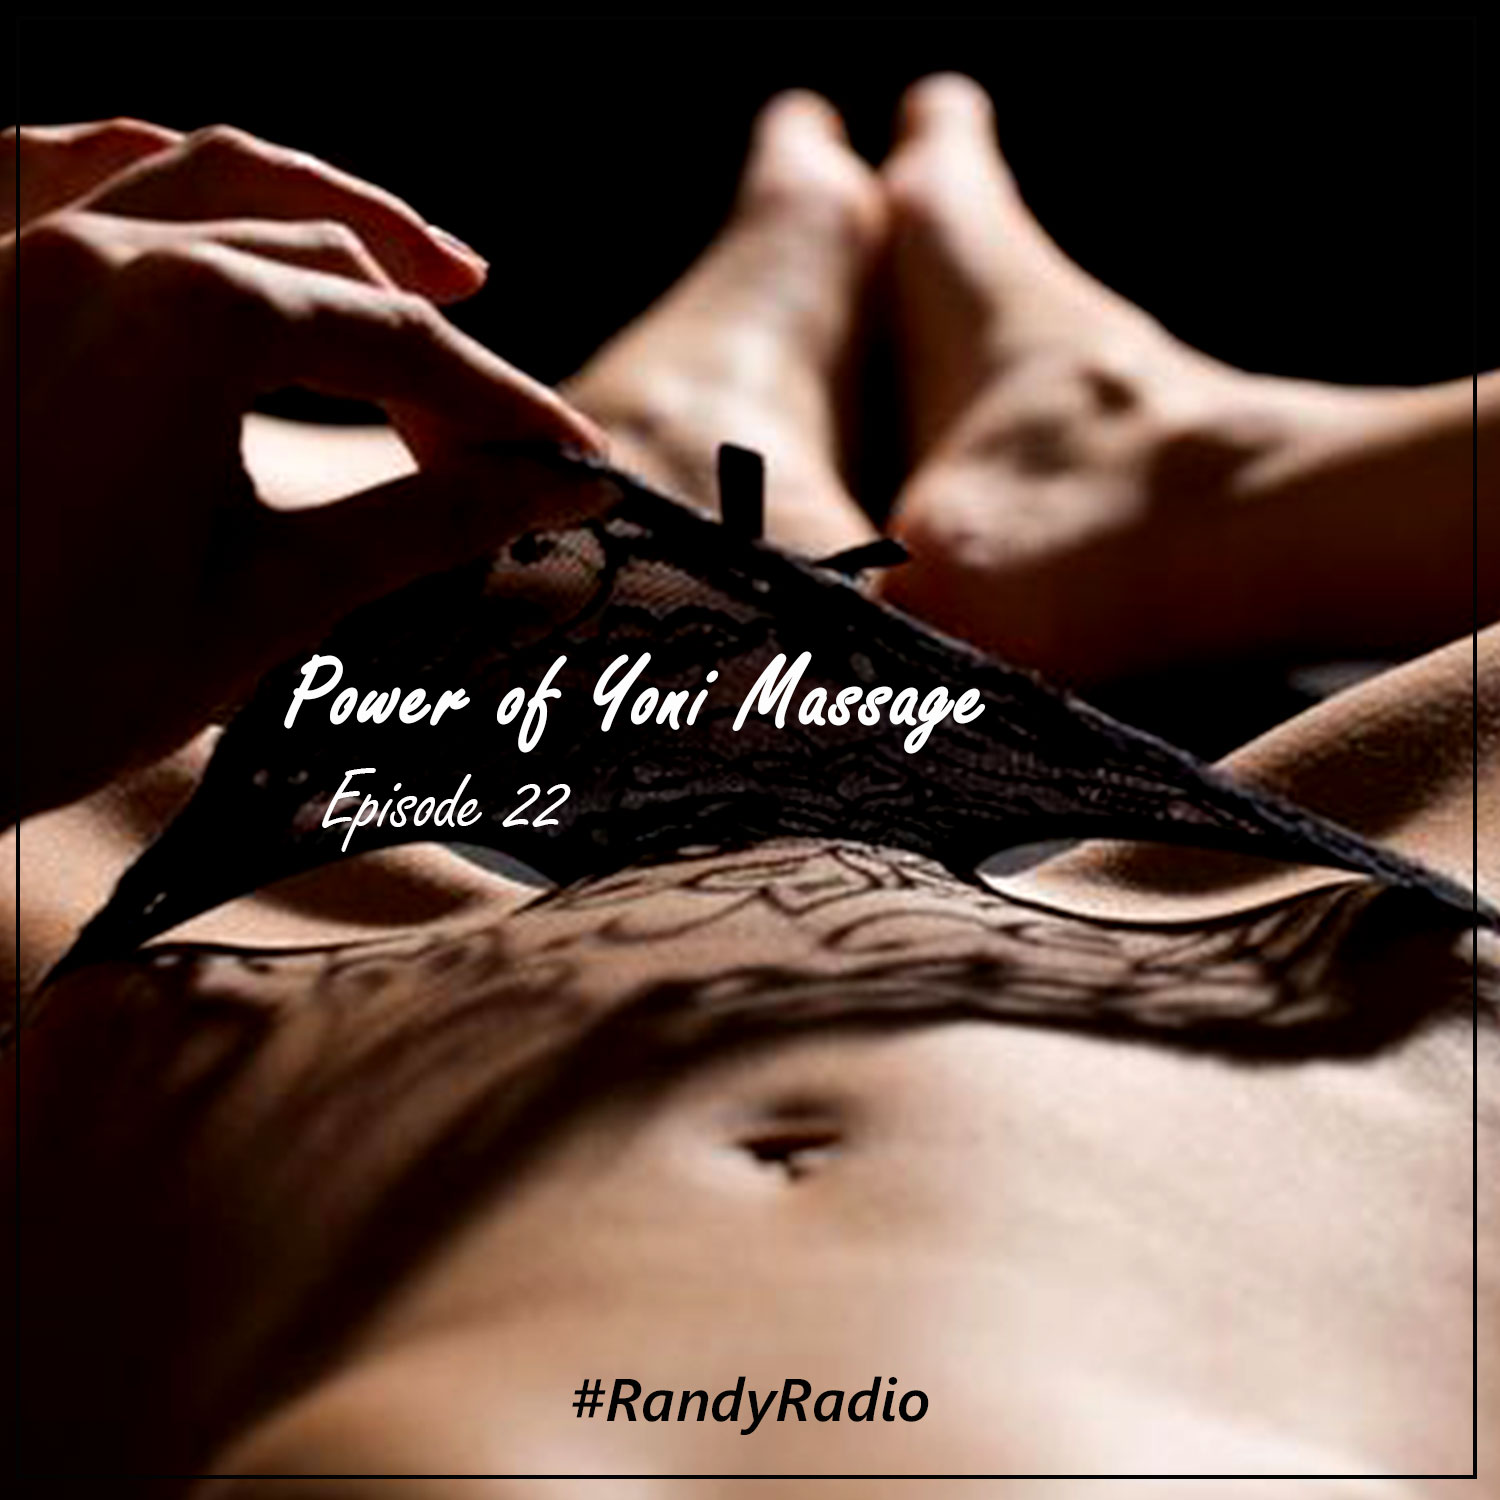 Randy Radio – Power of Yoni Massage with Slyrie